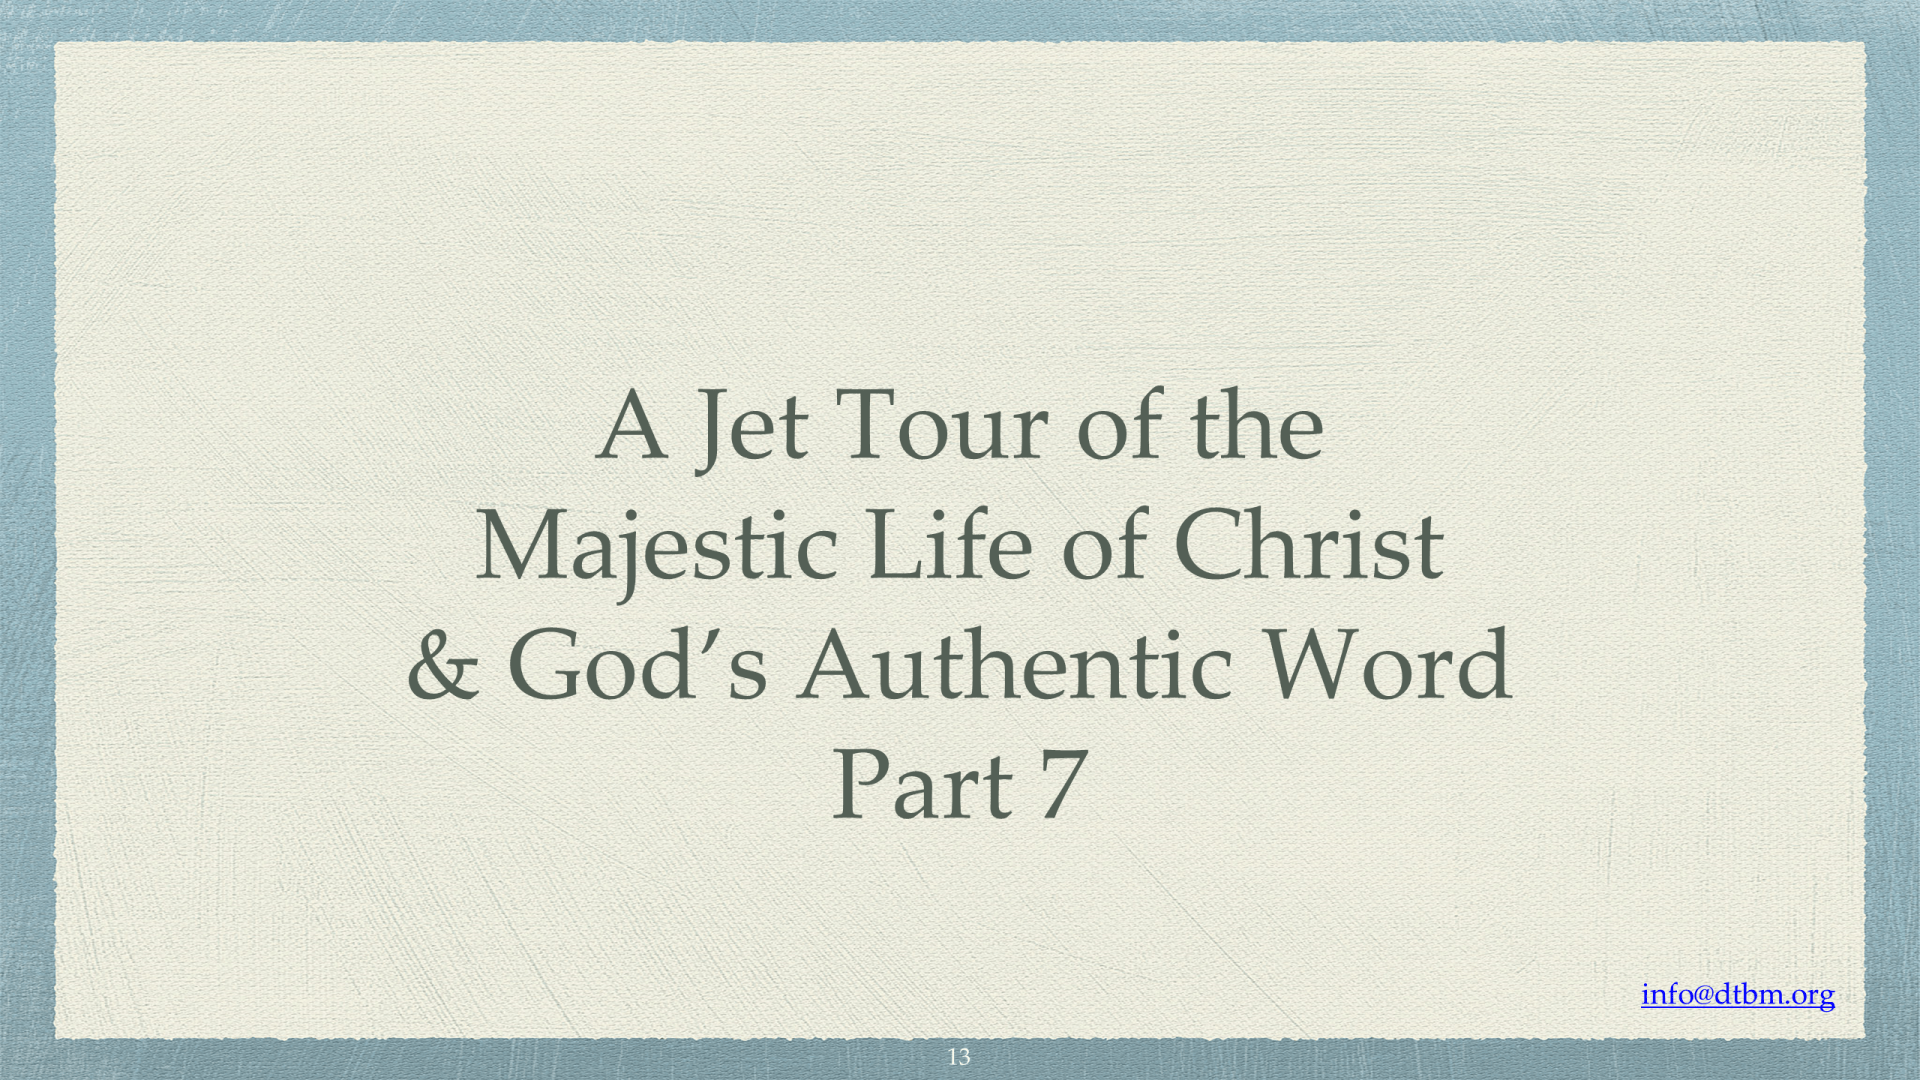 JET-07 - A Jet Tour Of The Majestic Life Of Christ & God's Authentic Word (13)